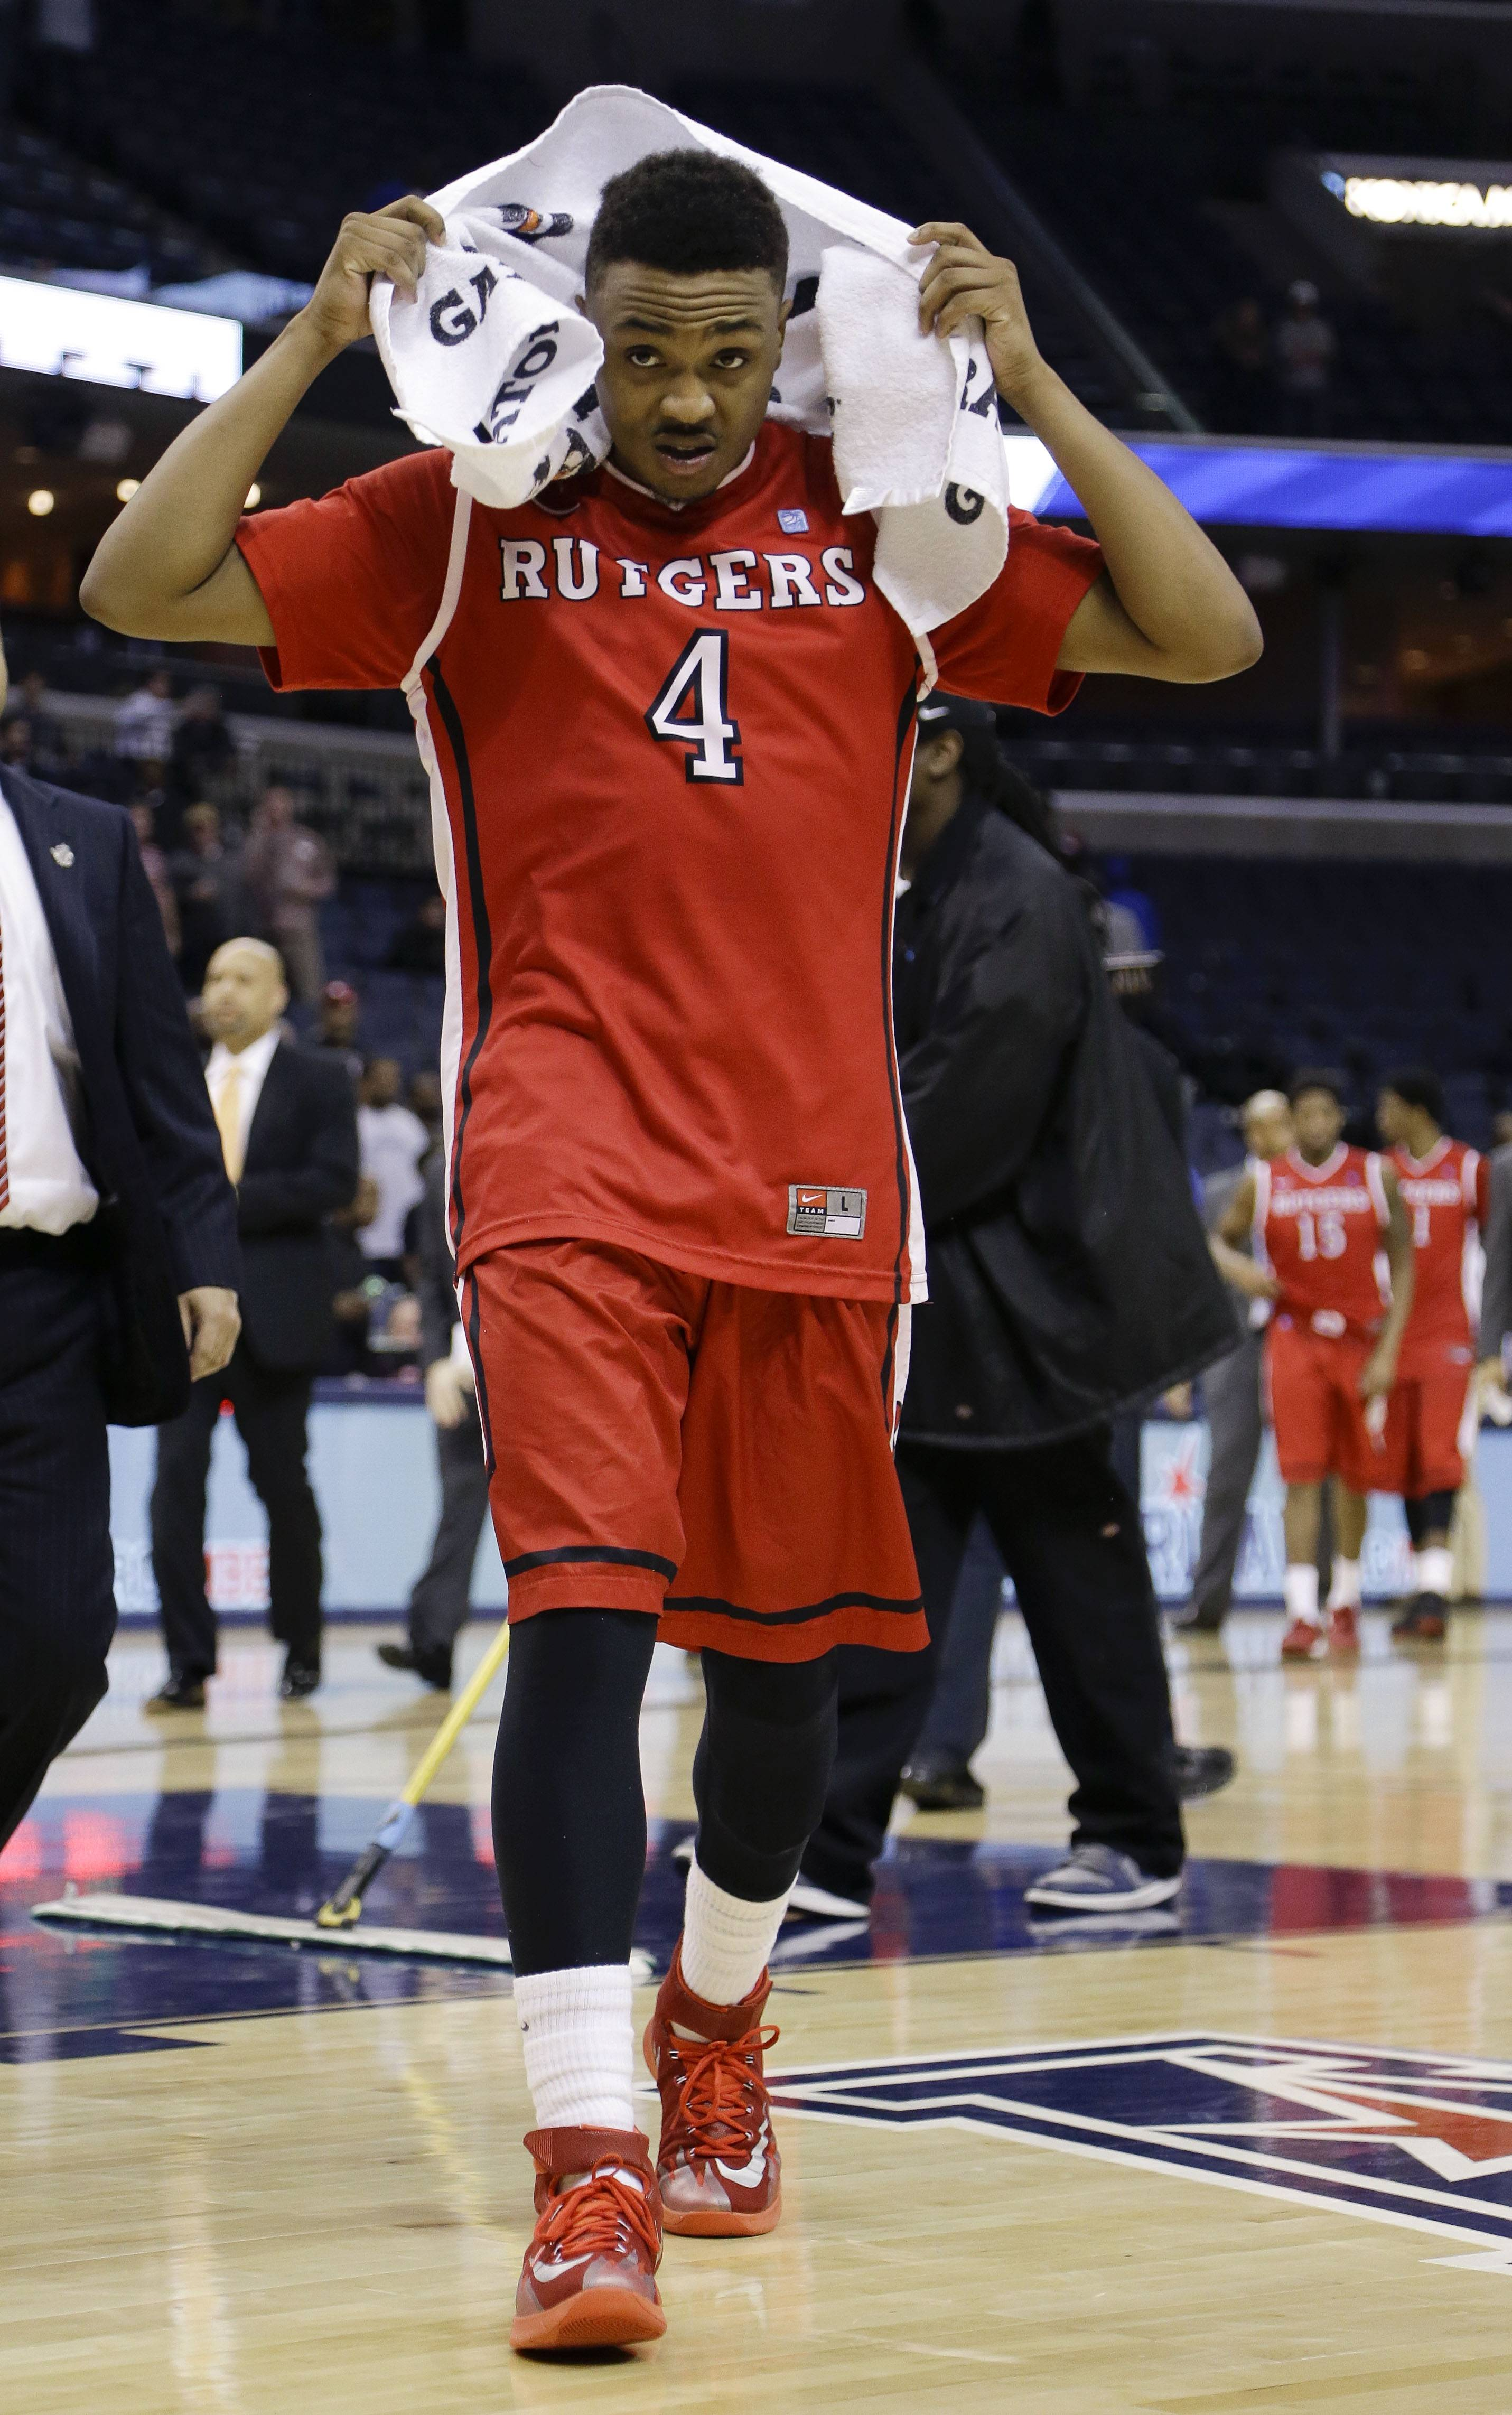 Rutgers guard Myles Mack (4) leaves the court after his team's 92-31 loss to Louisville in an NCAA college basketball game in the quarterfinals of the American Athletic Conference tournament Thursday, March 13, 2014, in Memphis, Tenn.